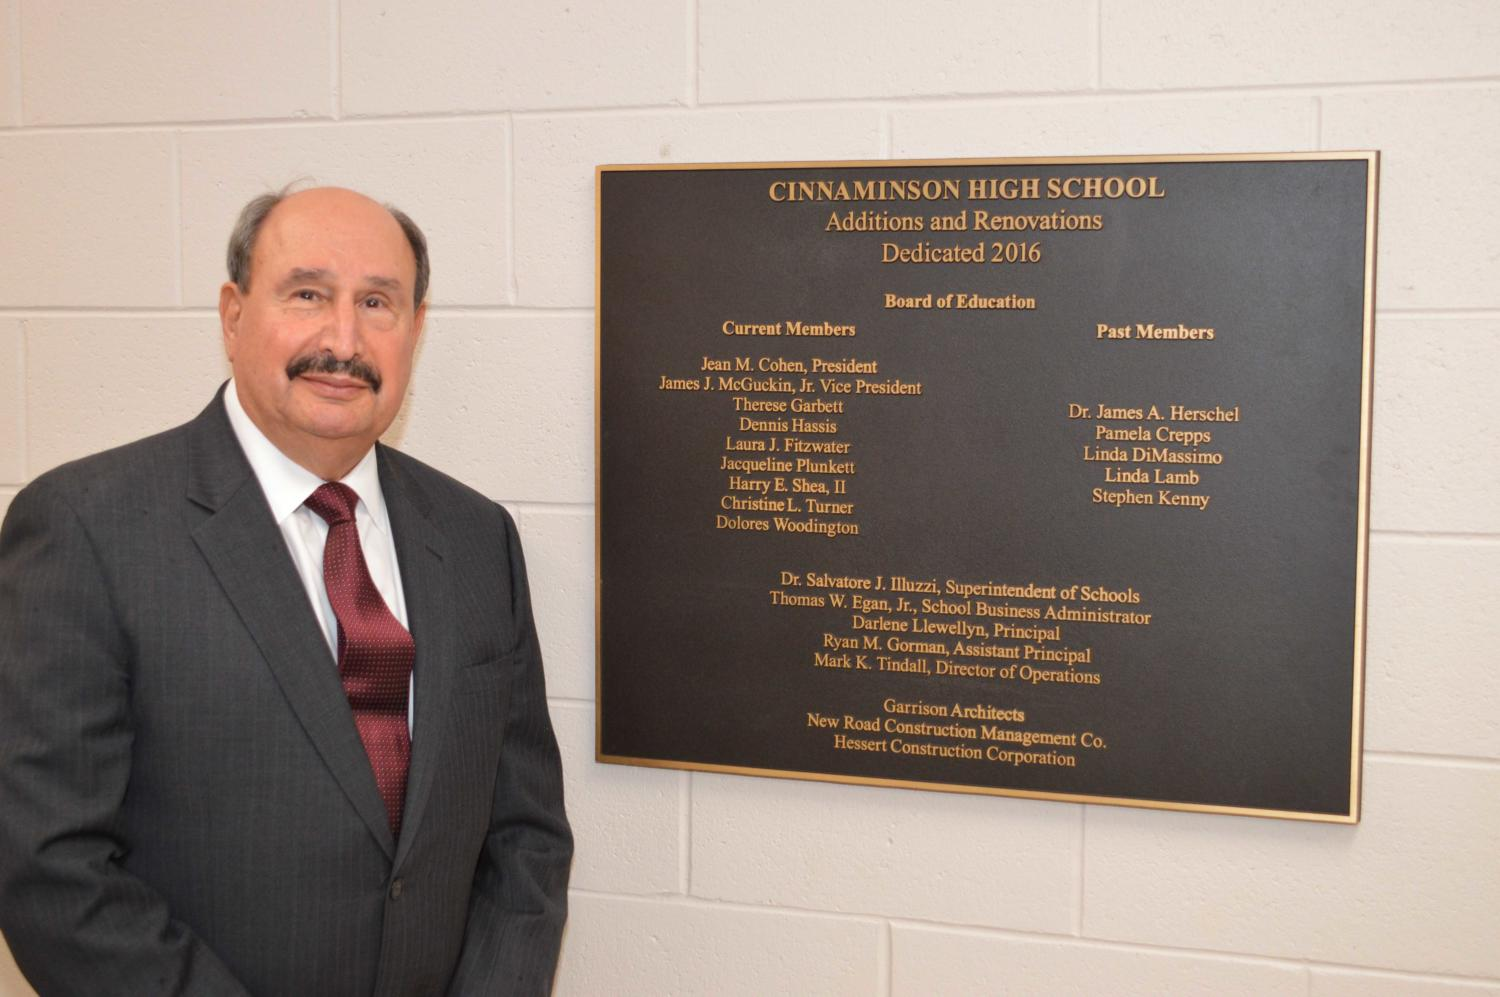 Dr. Illuzzi poses next to the plaque that honors the dedication of the new CHS building.